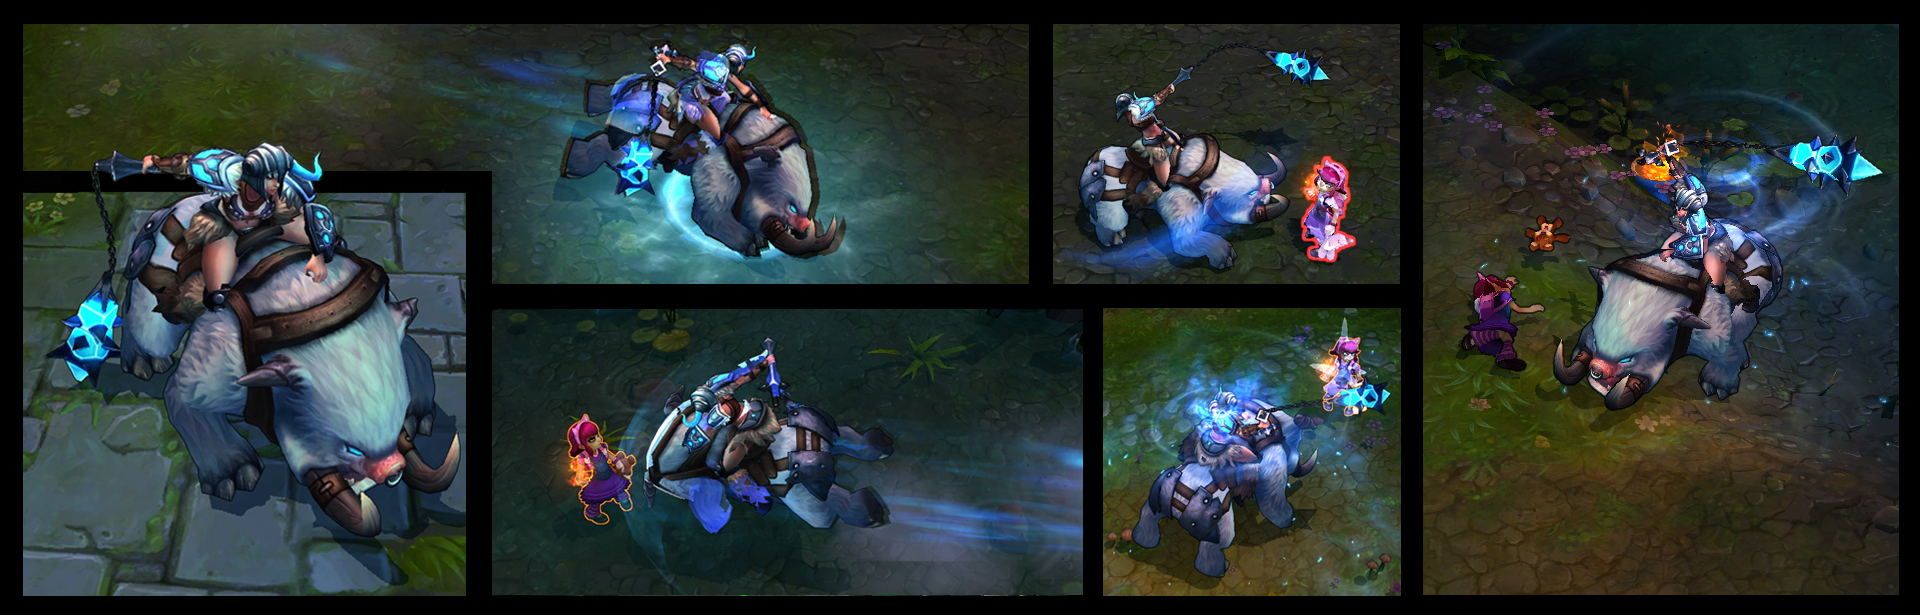 Skin viewer league of legends | Ingame skin viewer  :: League of